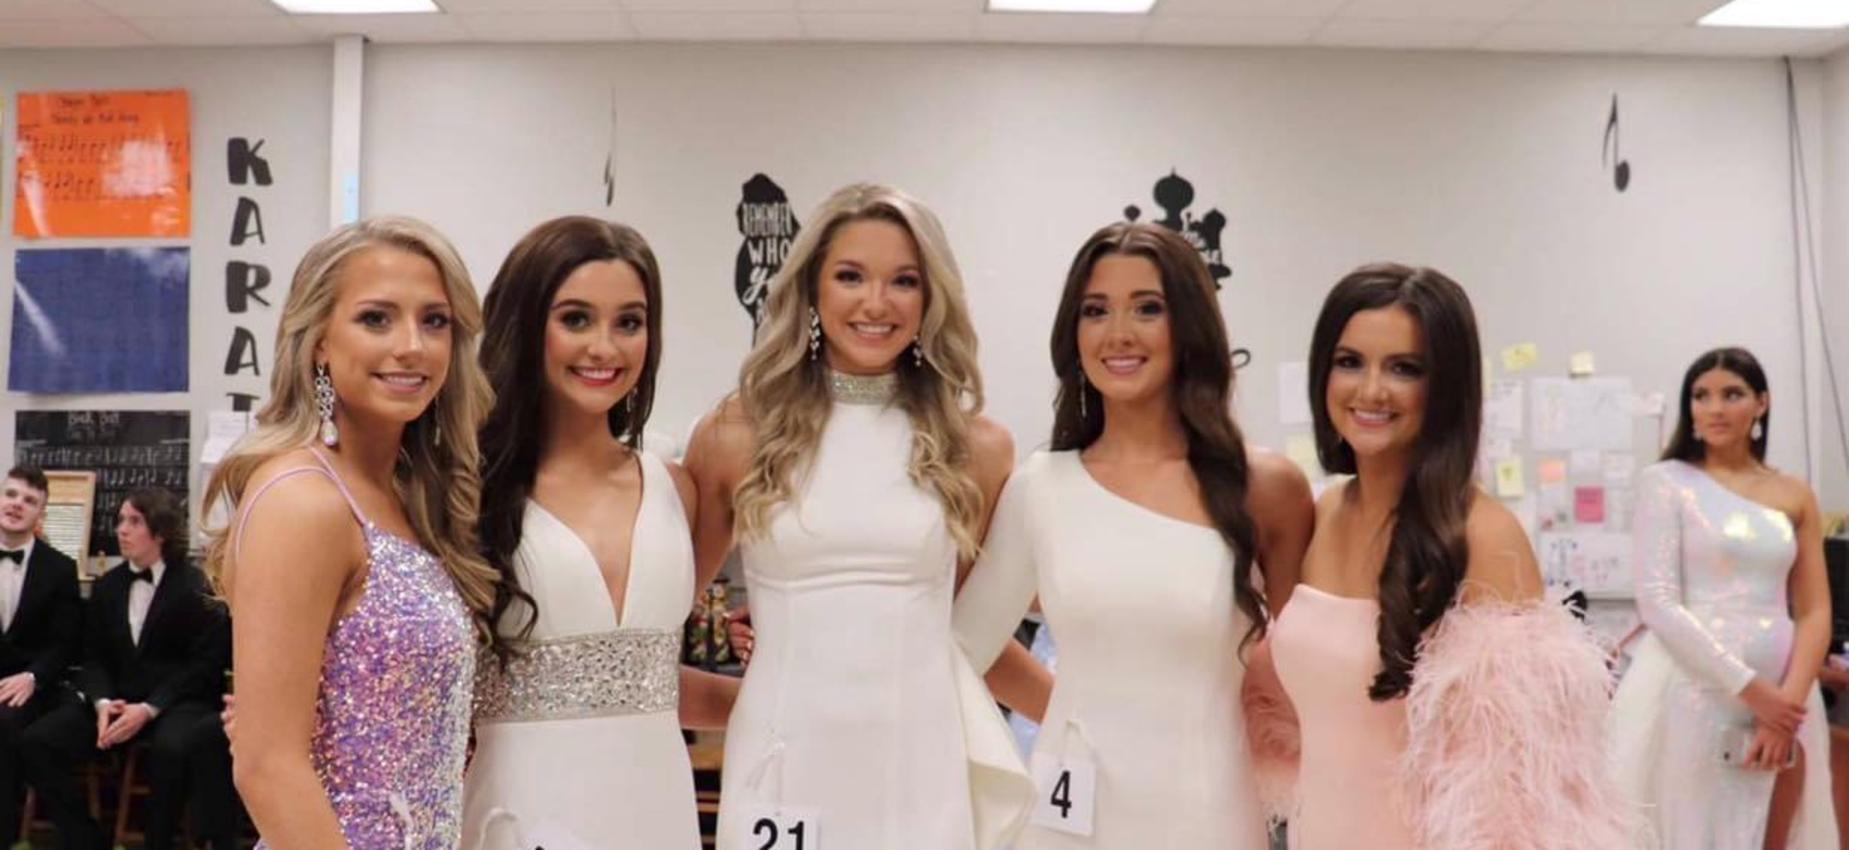 Beauty Review Contestants